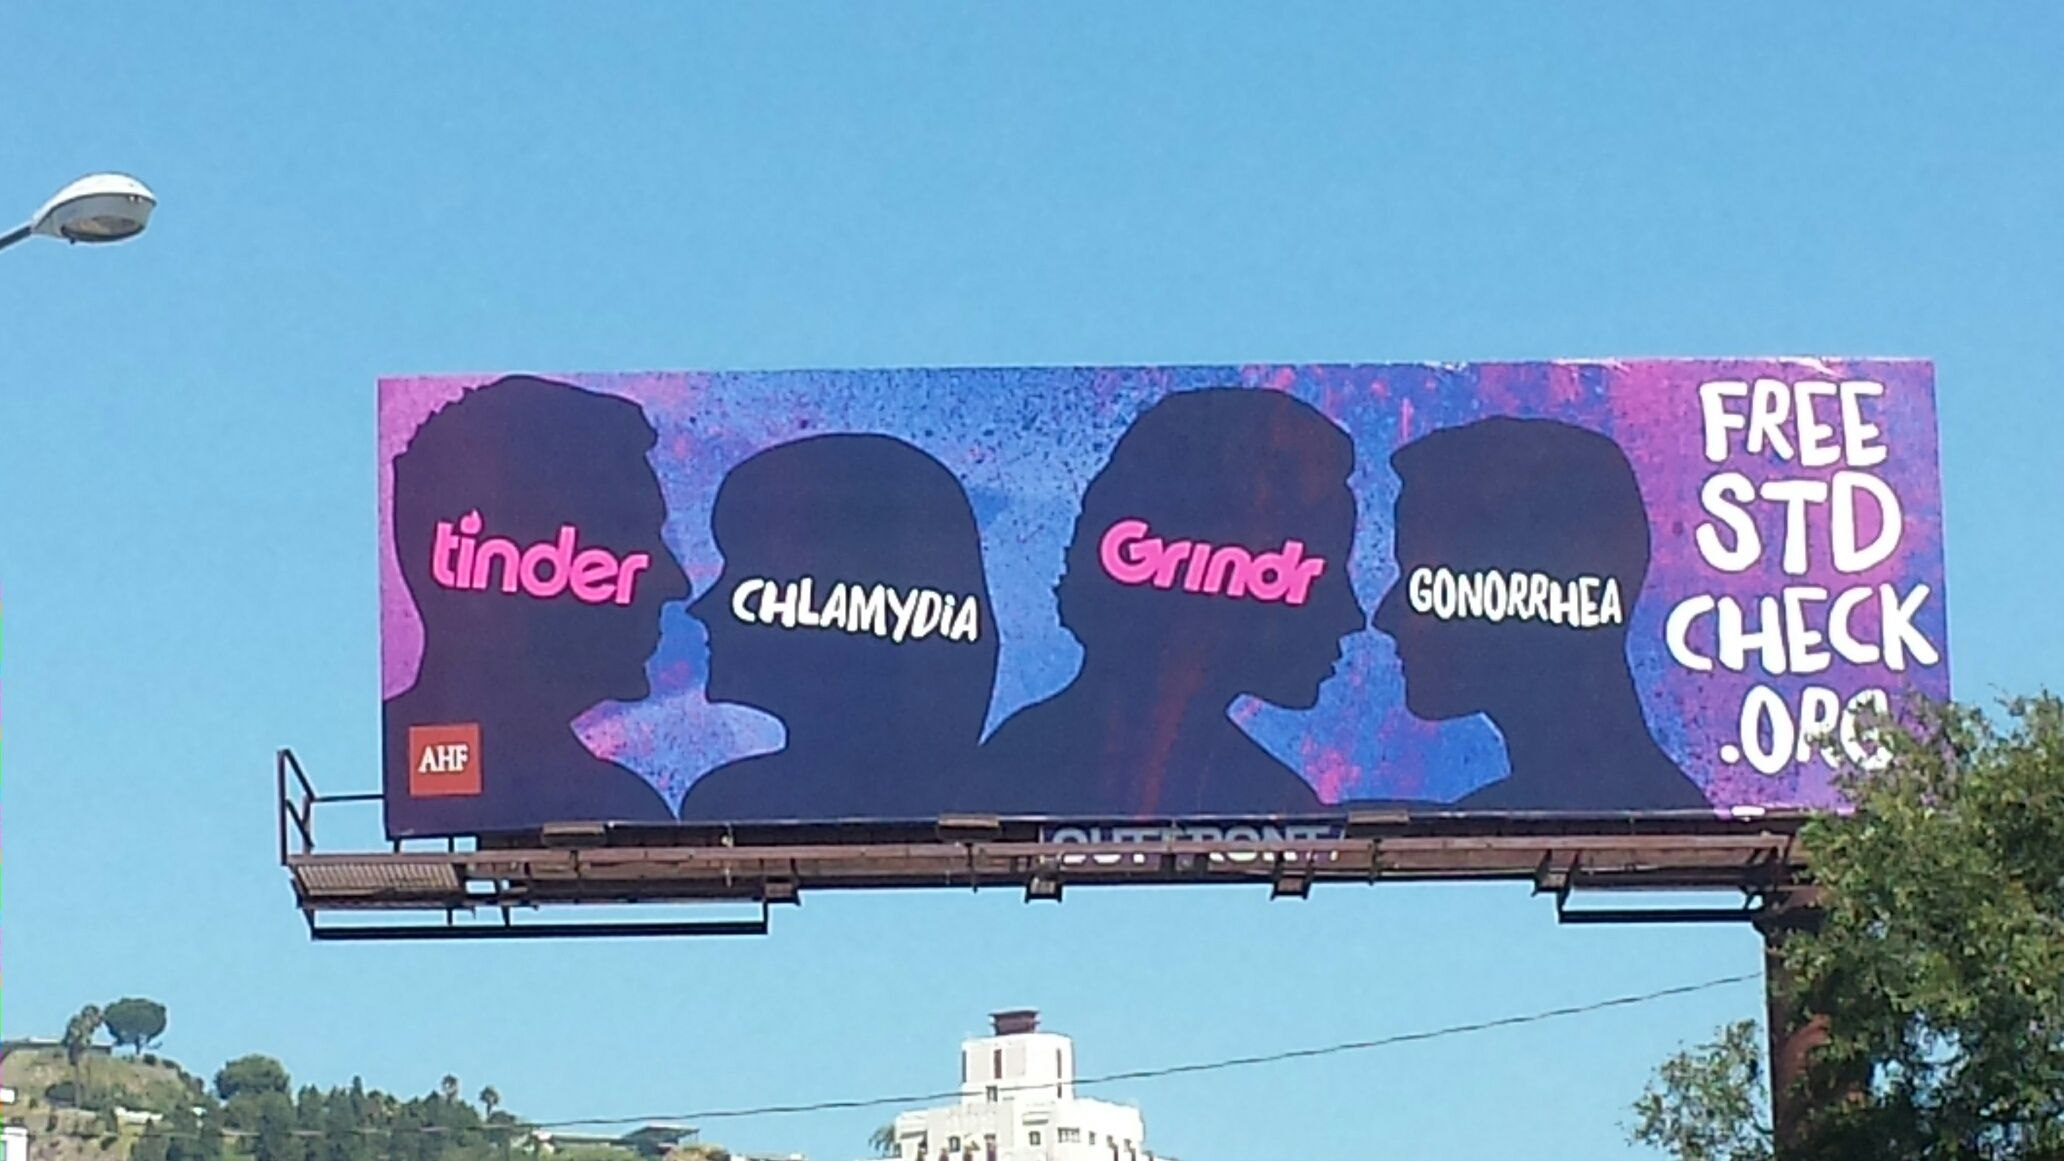 Senior Dating Sites >> Tinder Clashes With AIDS Healthcare Foundation Over STD Billboard